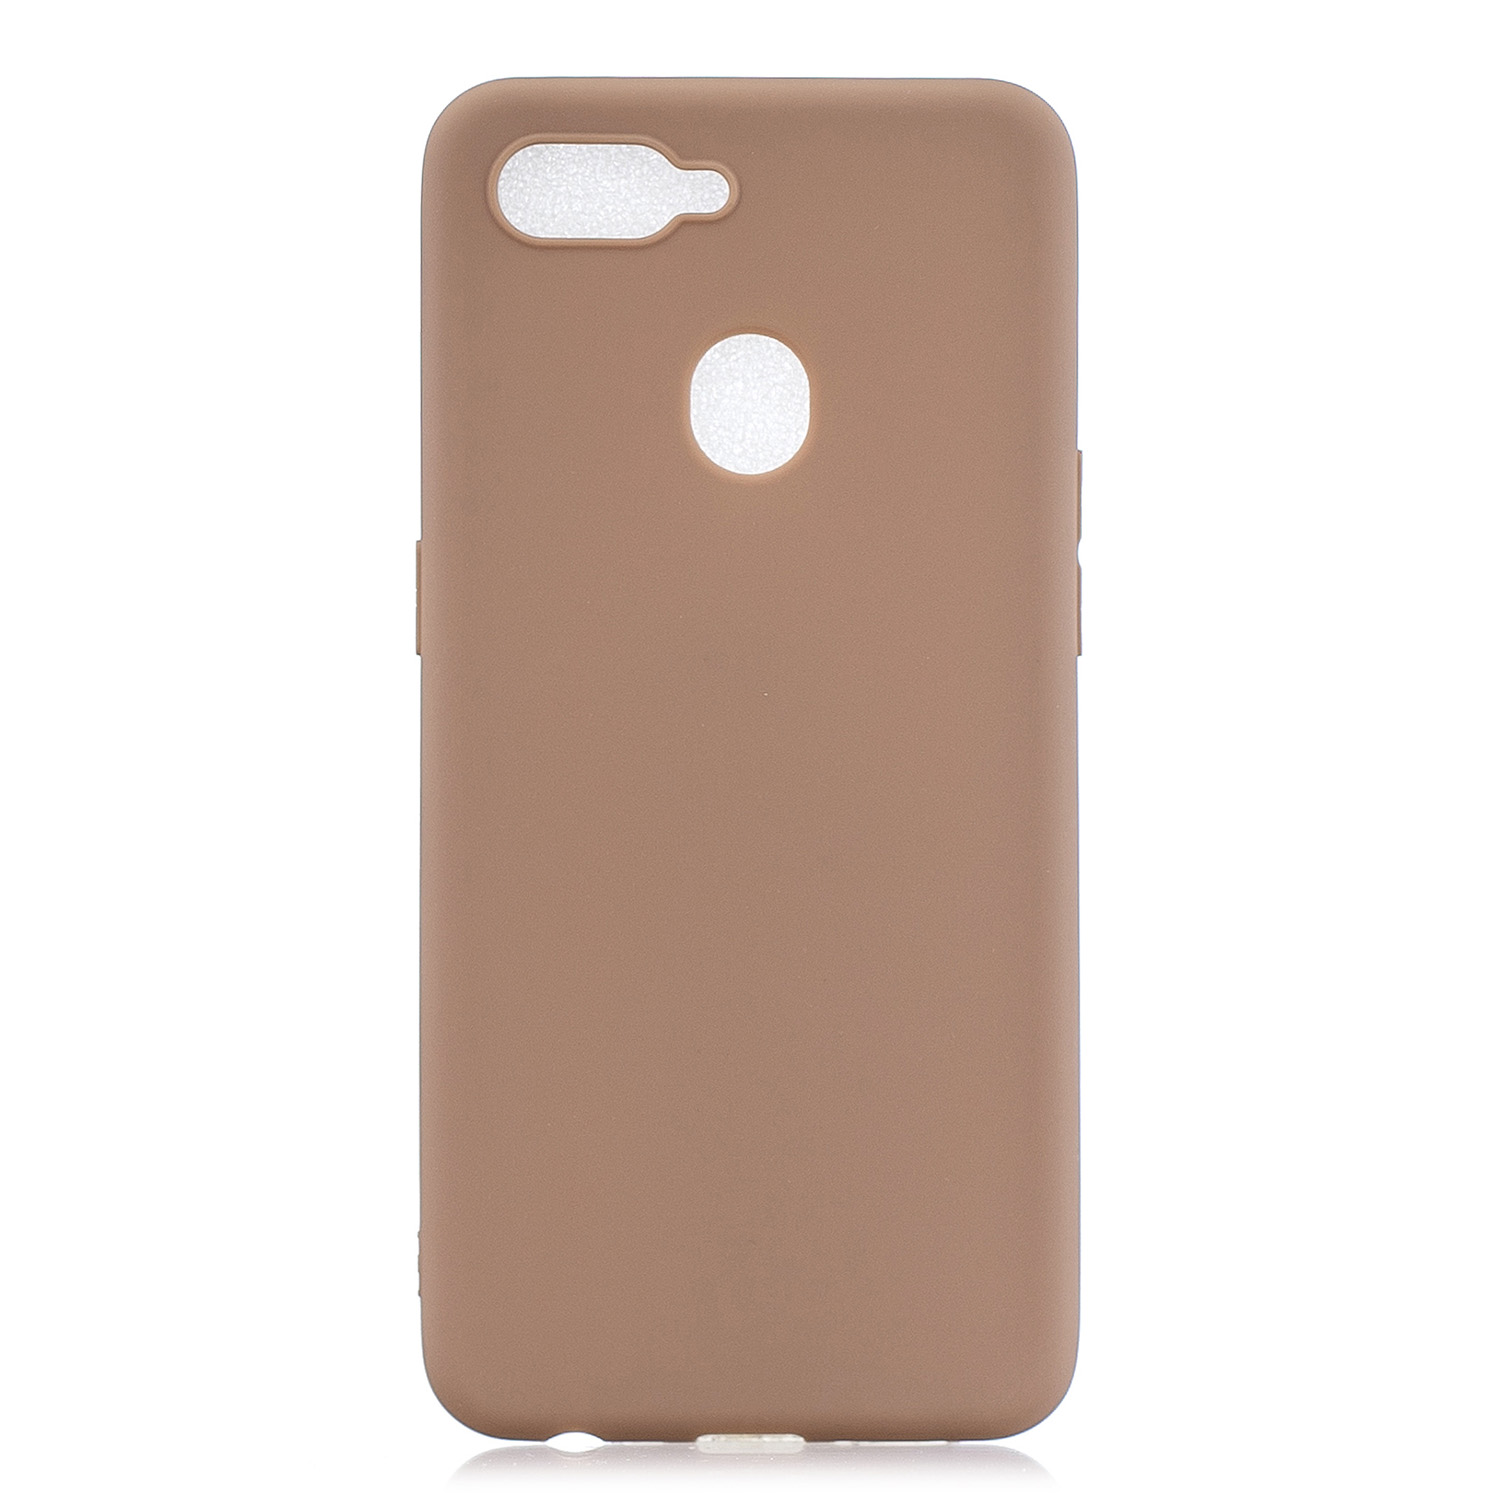 For OPPO F9 Lovely Candy Color Matte TPU Anti-scratch Non-slip Protective Cover Back Case 9